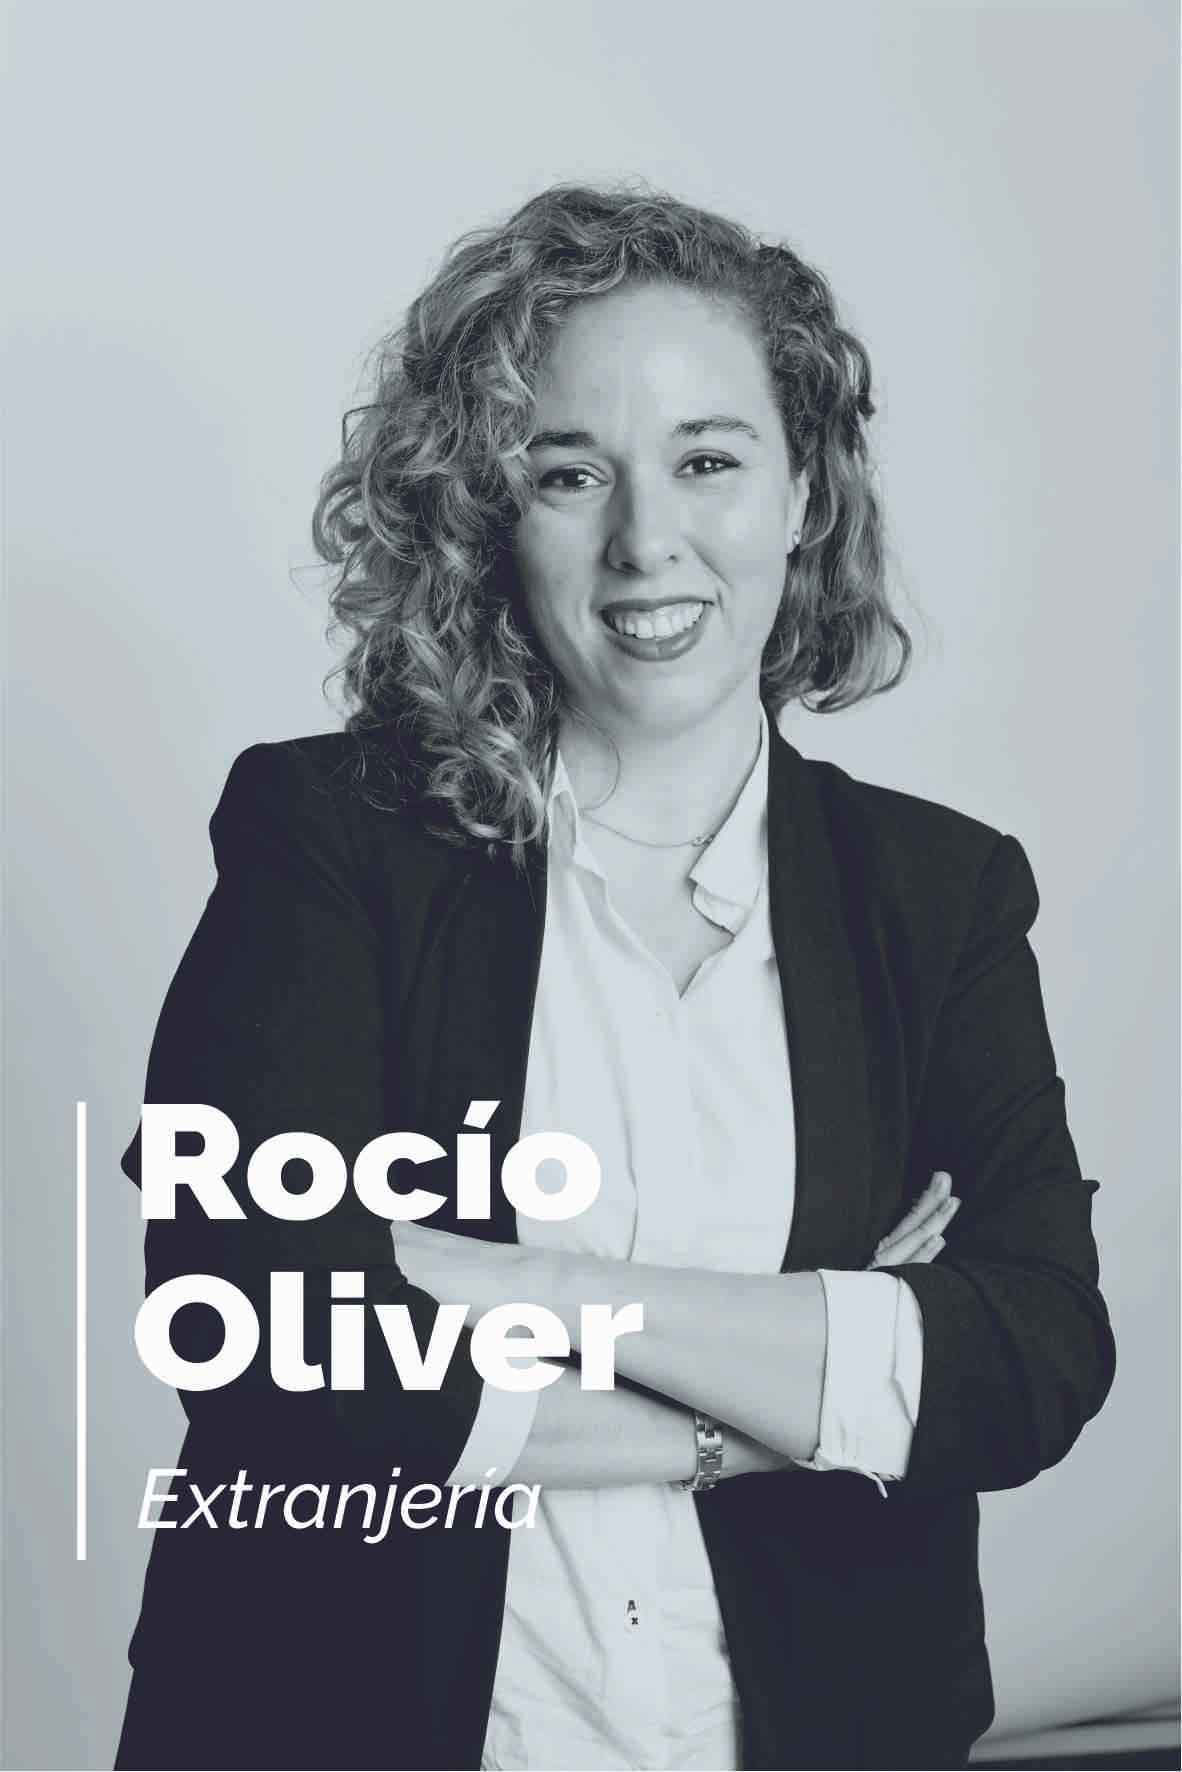 Rocío Oliver